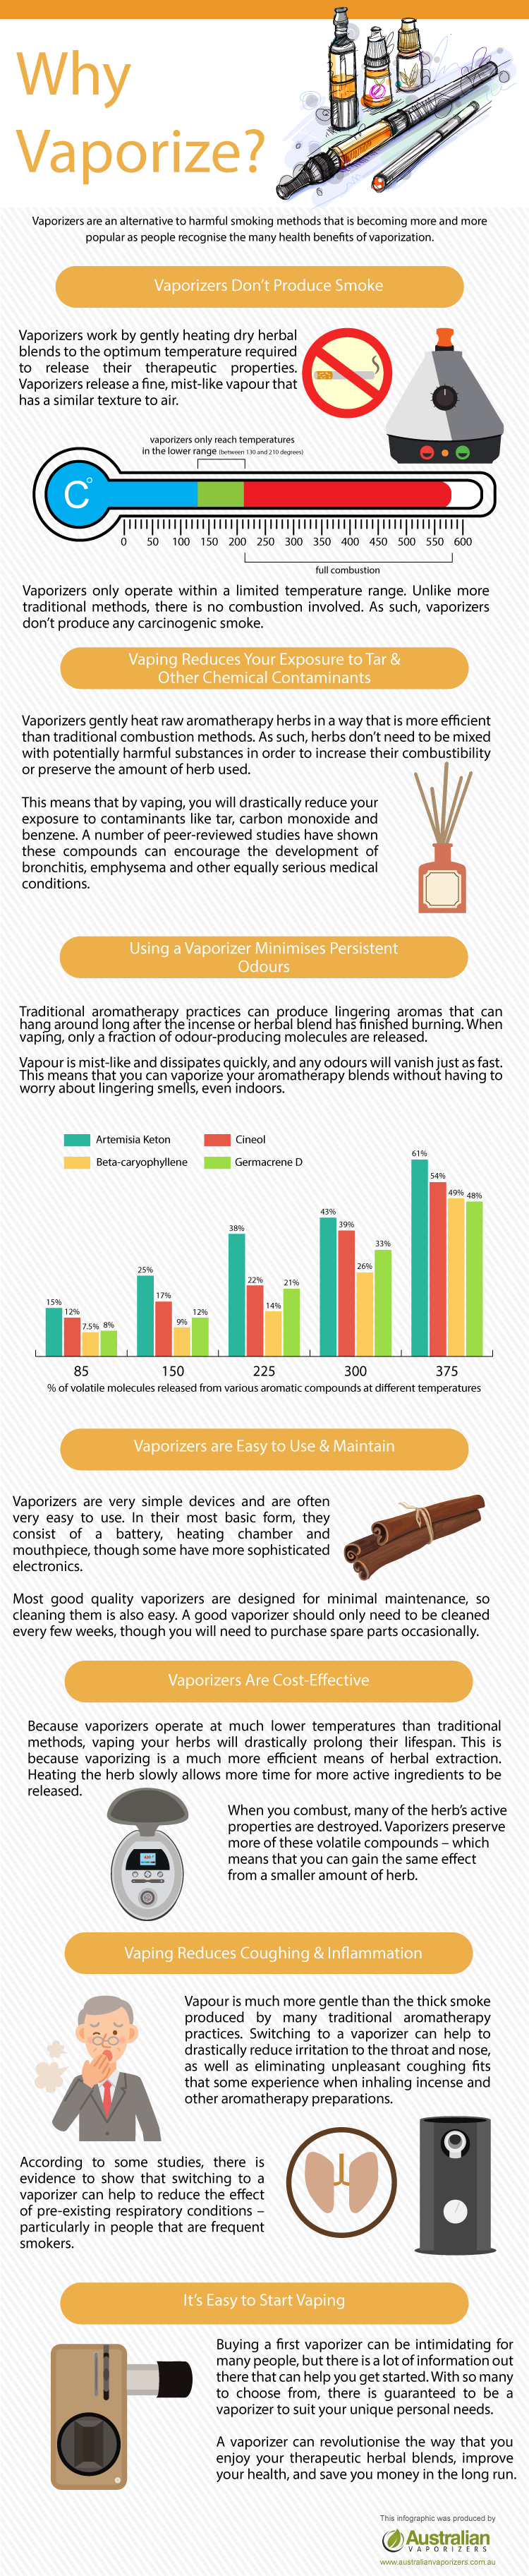 Info graphic on vaporizers